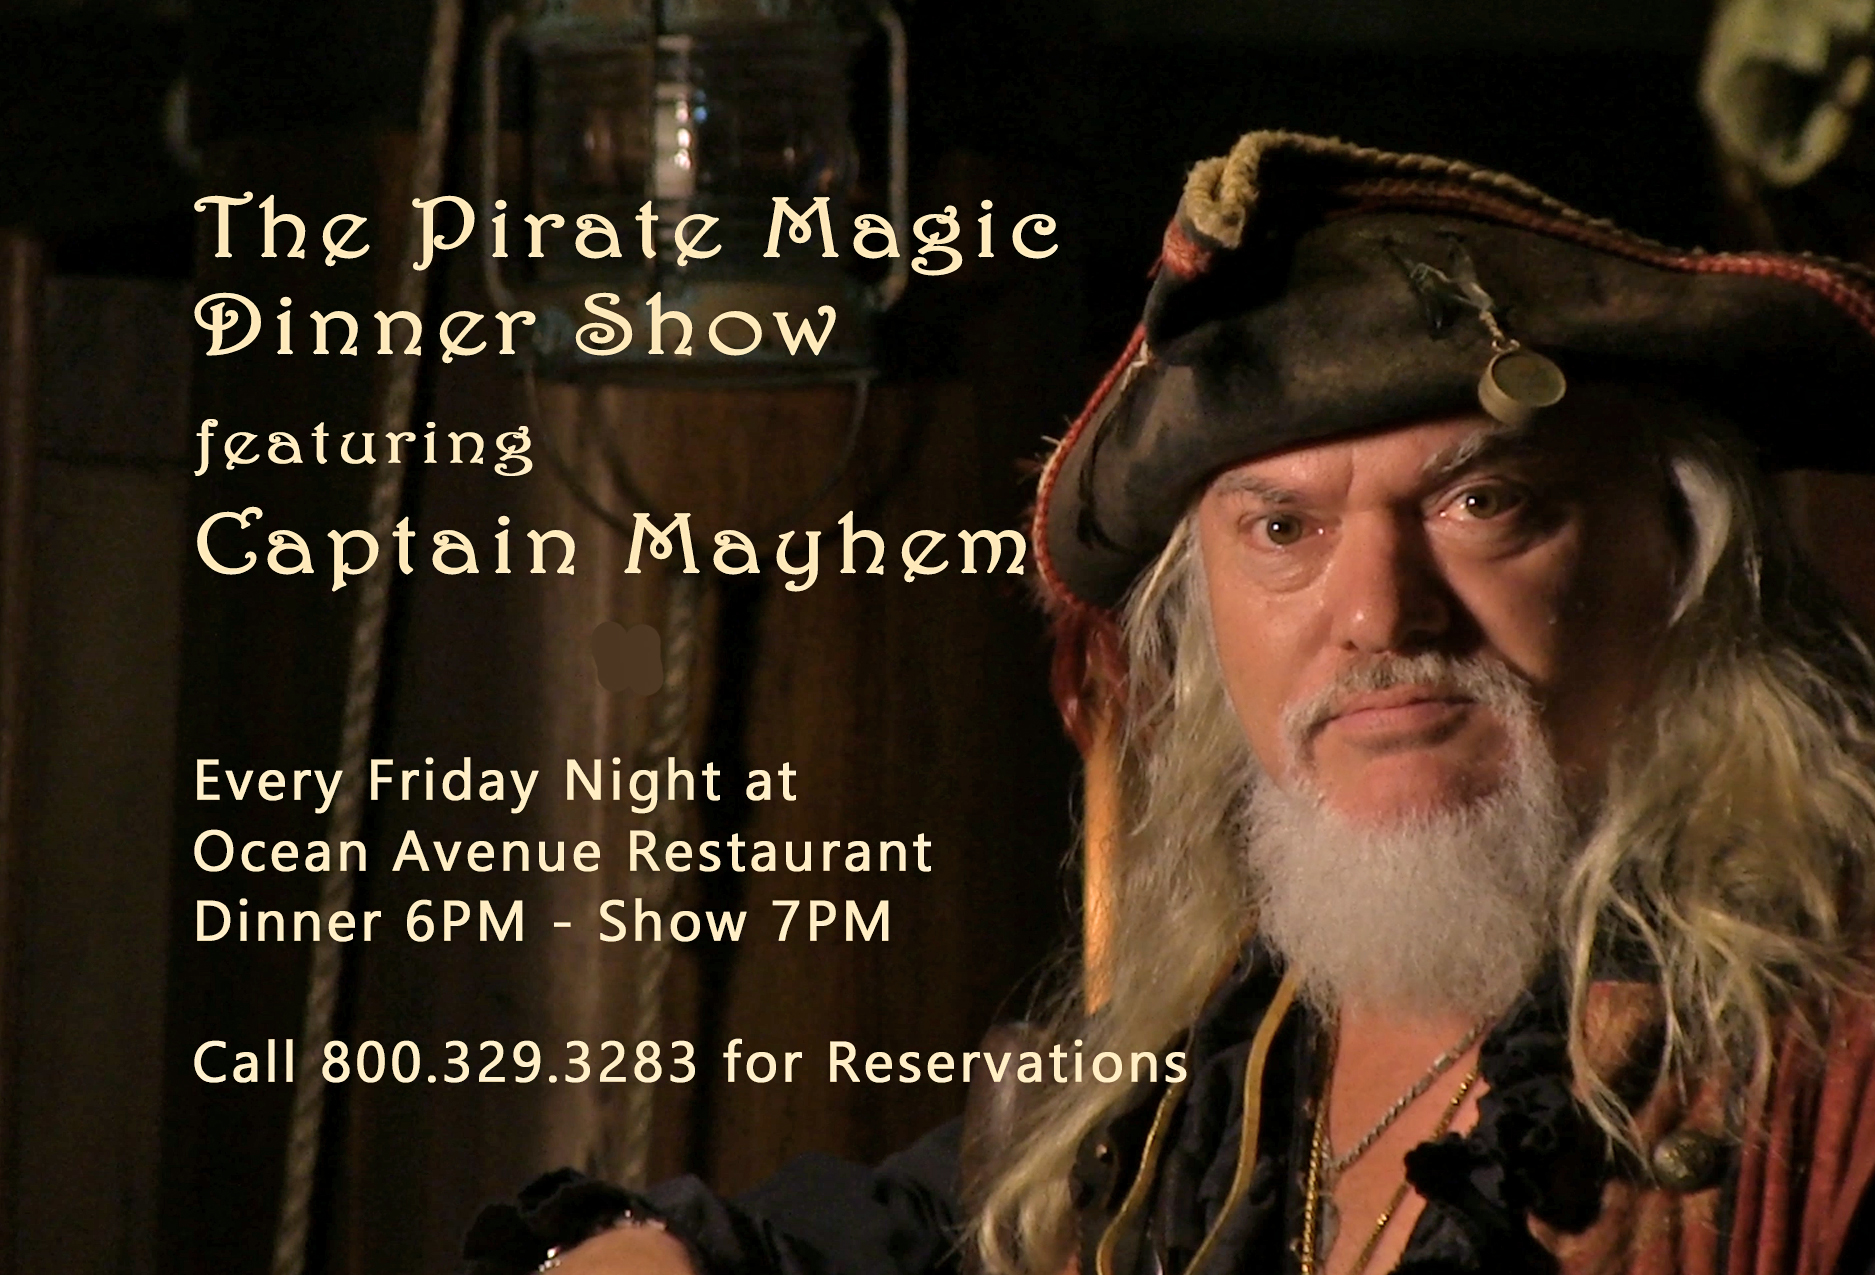 Captain Mayhem in the Pirate Magic Show